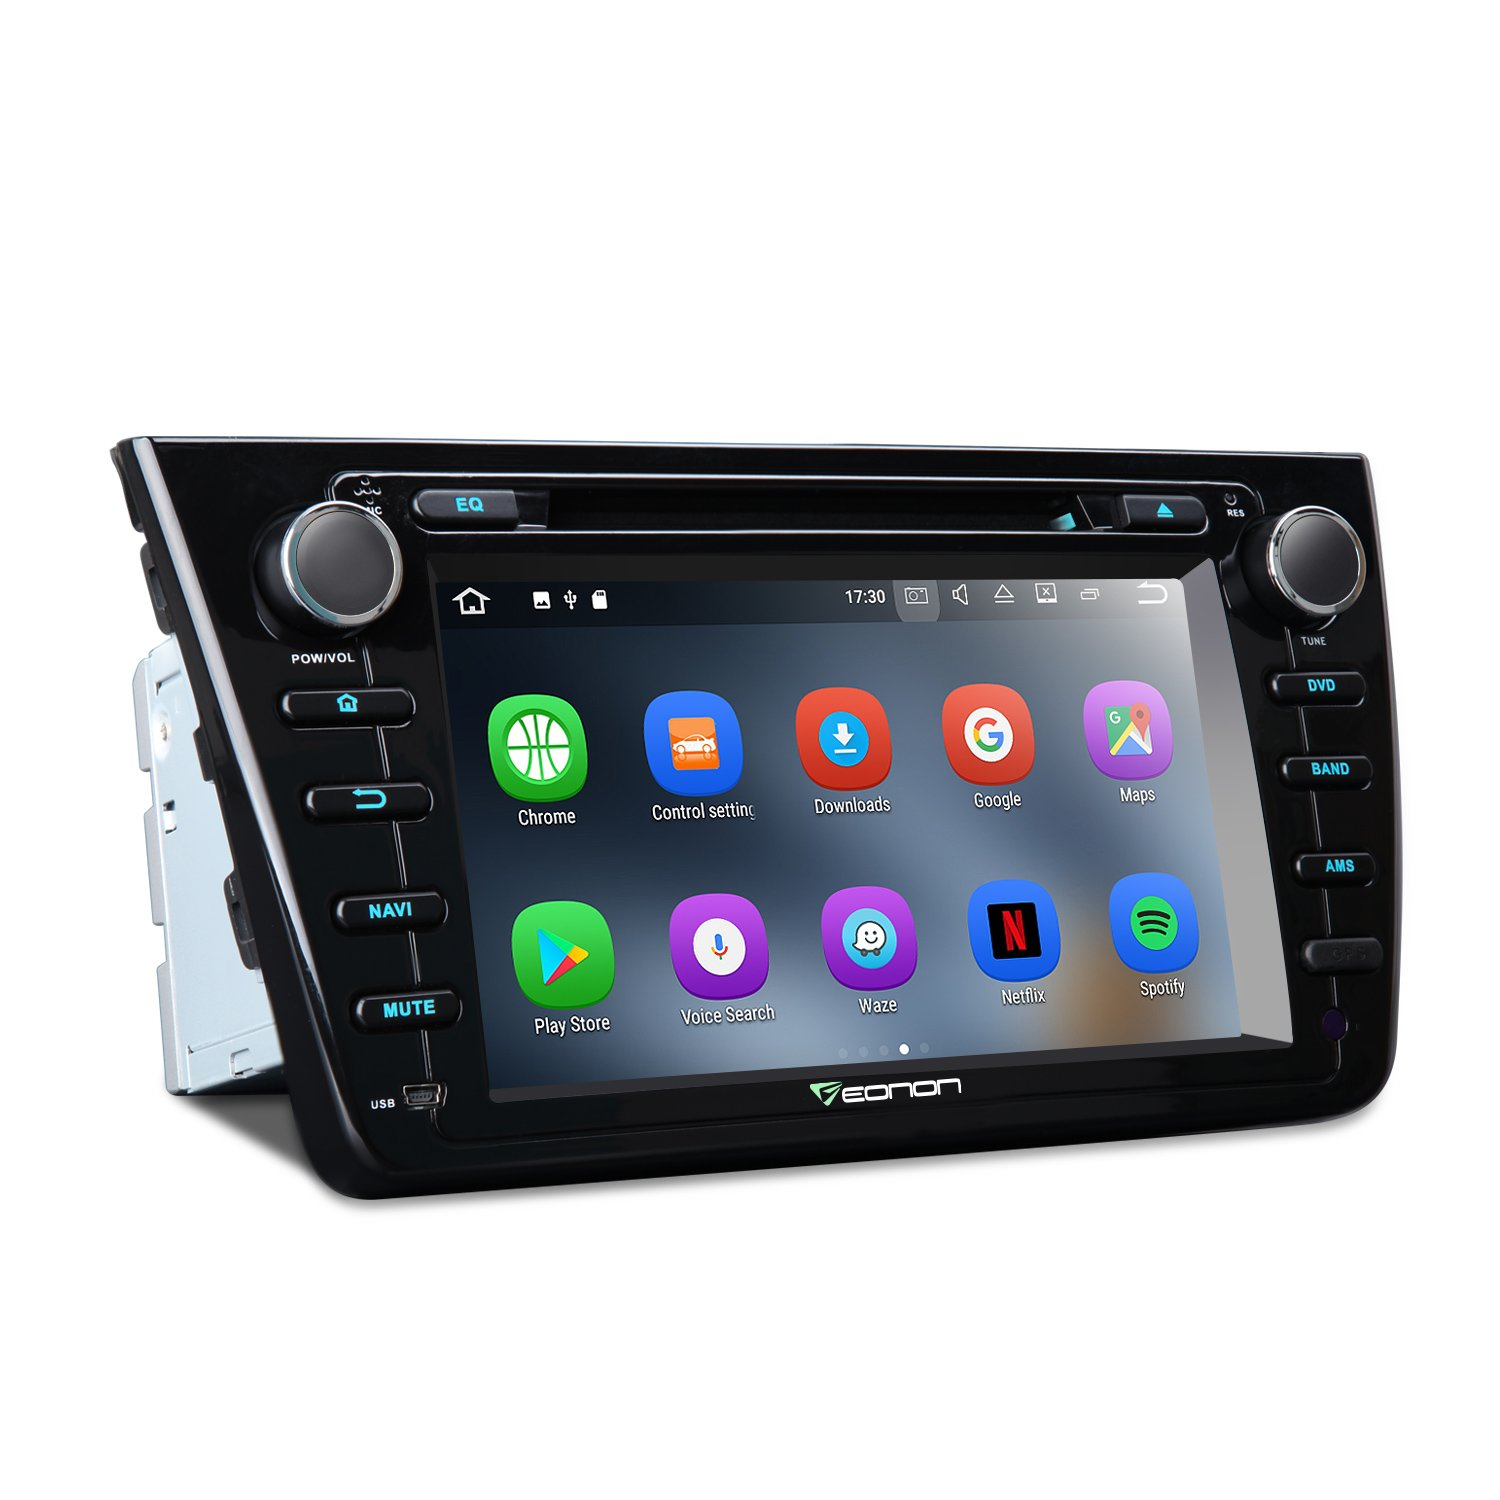 Eonon GA8198 Car Audio Stereo Radio for Mazda 6 2009,2010,2011 and 2012 Android 7.1, 8 Inch Quad Core 16GB+2GB Car GPS Navigation In Dash Touch Screen with Bluetooth MirrorLink, AUX,